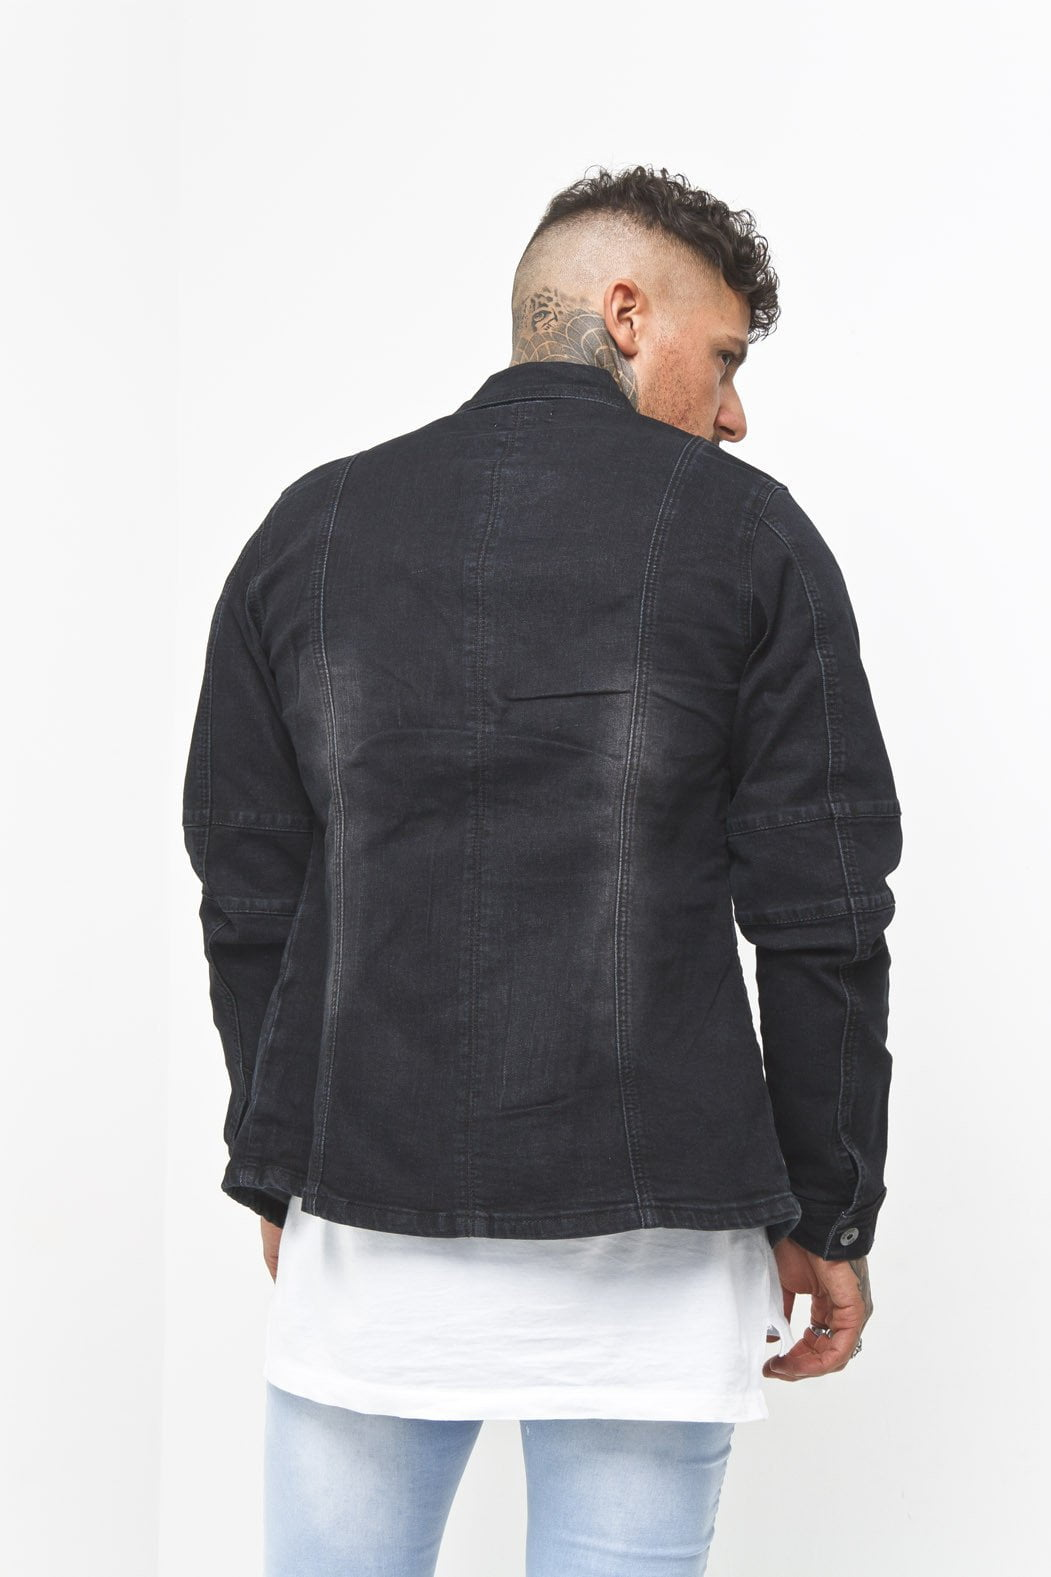 Liquor n Poker - Denim Biker Jacket in Washed Black - Liquor N Poker  Liquor N Poker